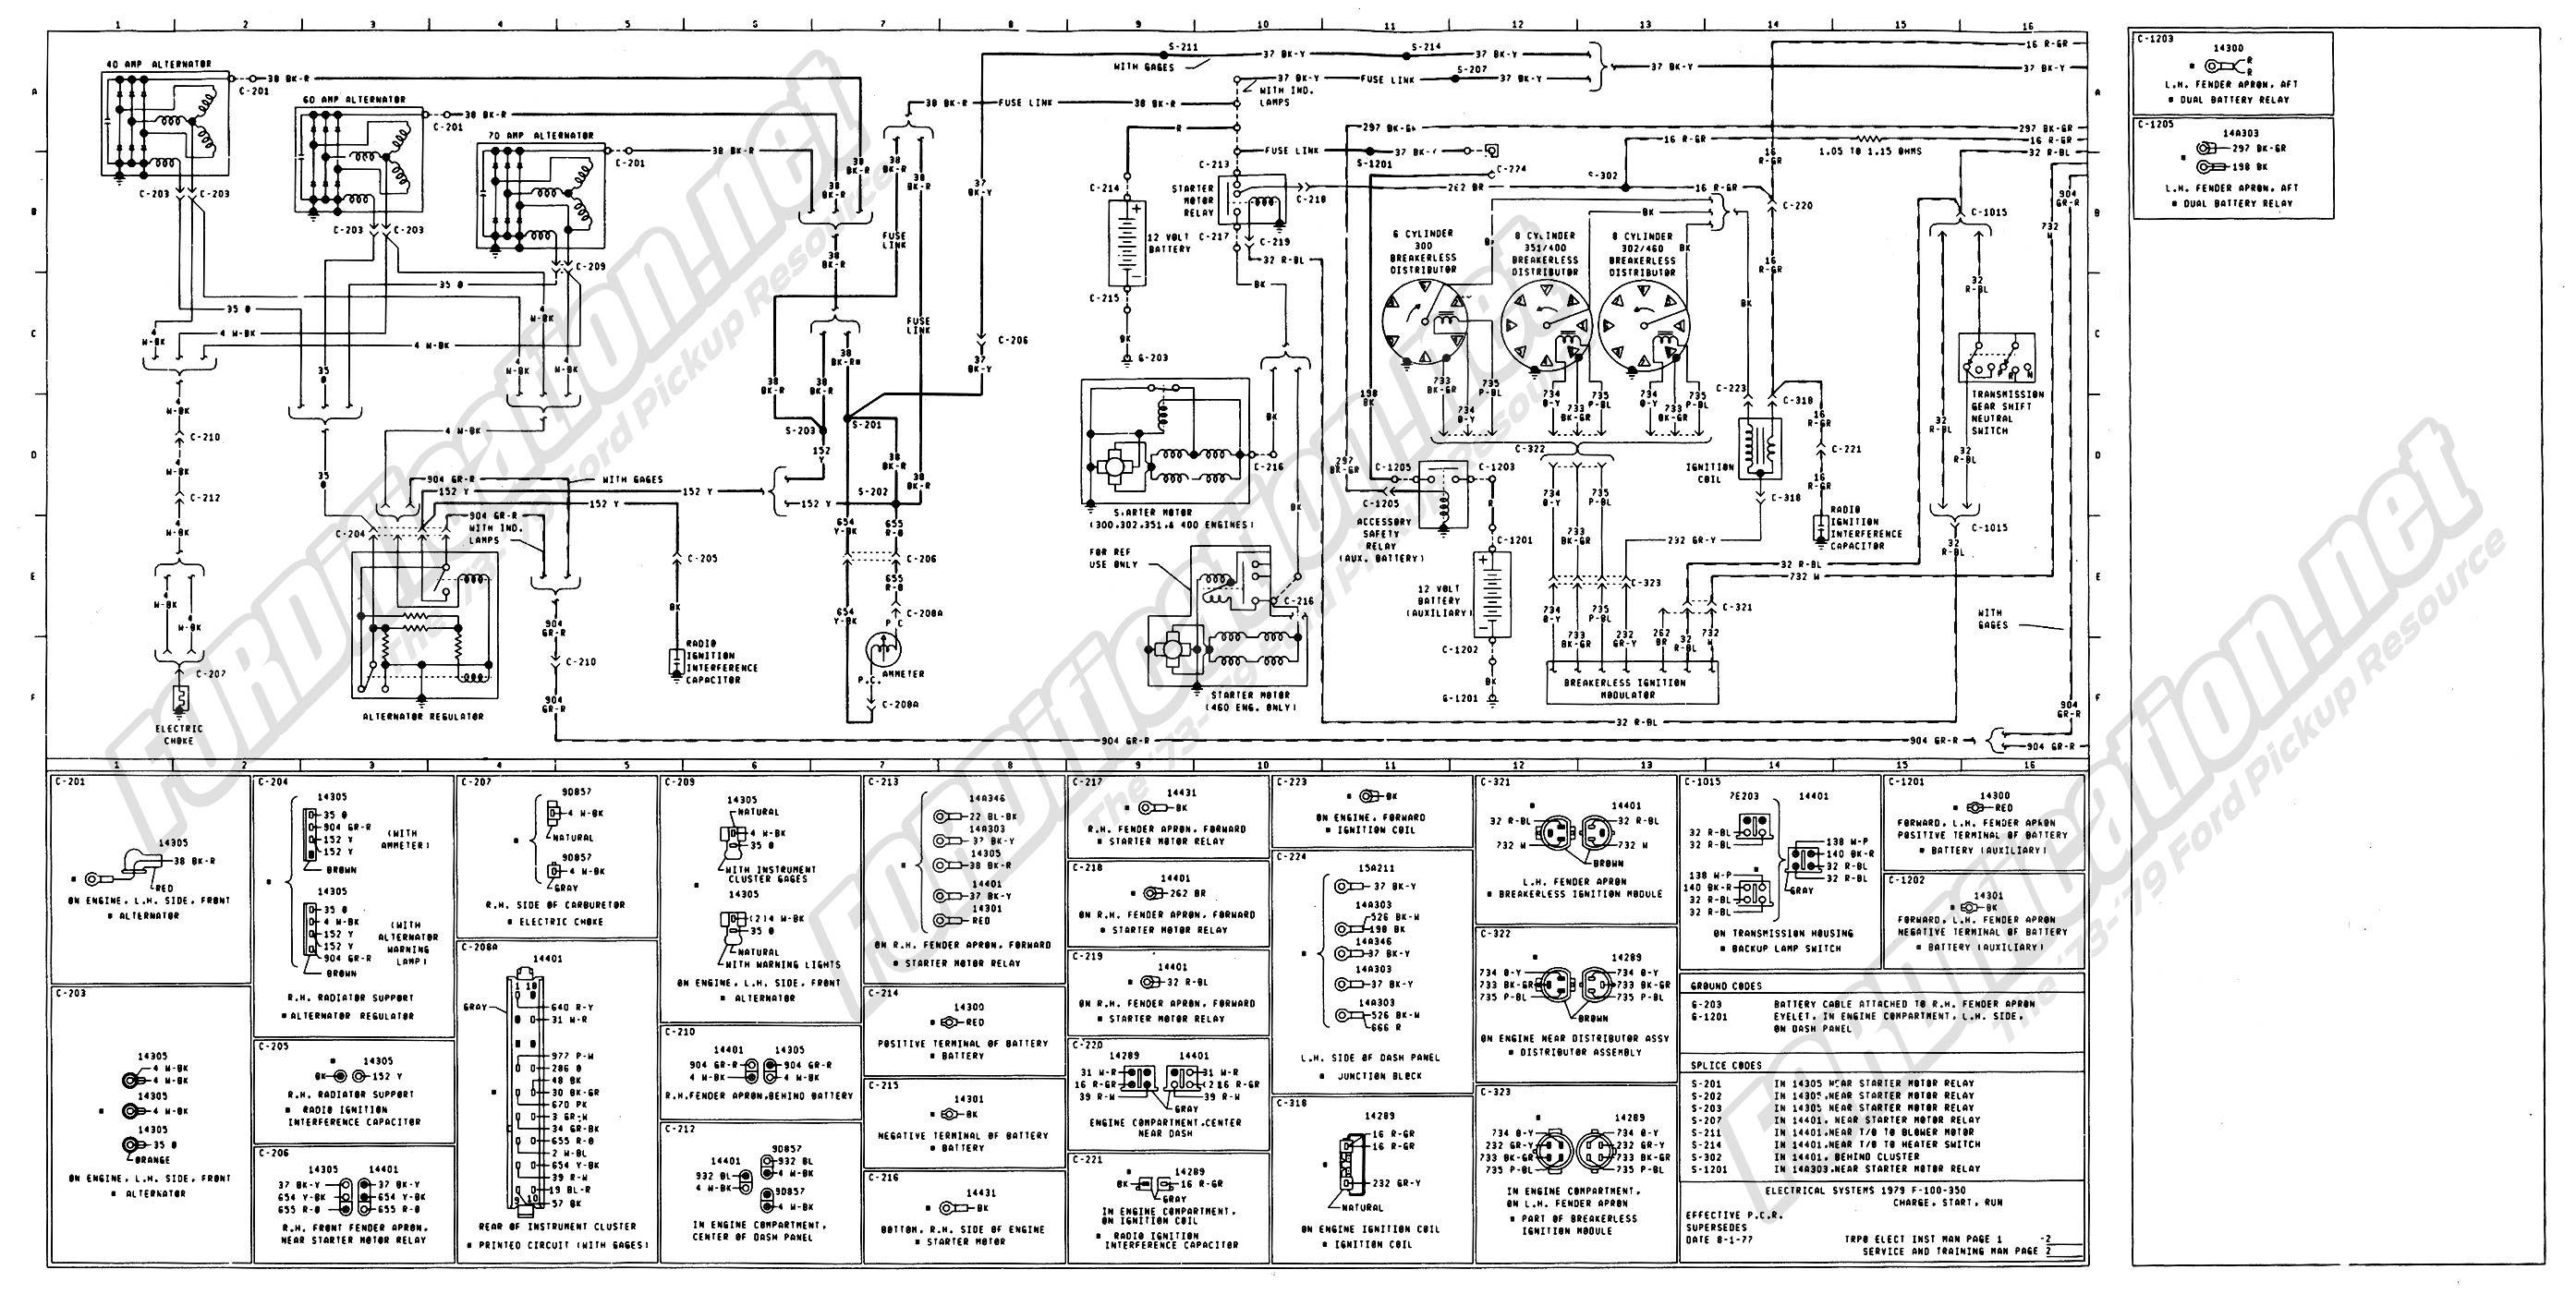 ford fuse diagrams 89 f 700 14 2 kenmo lp de \u2022ford fuse diagrams 89 f 700 manual e books rh 16 made4dogs de 1964 ford thunderbird fuse diagrams 2016 f150 interior fuse